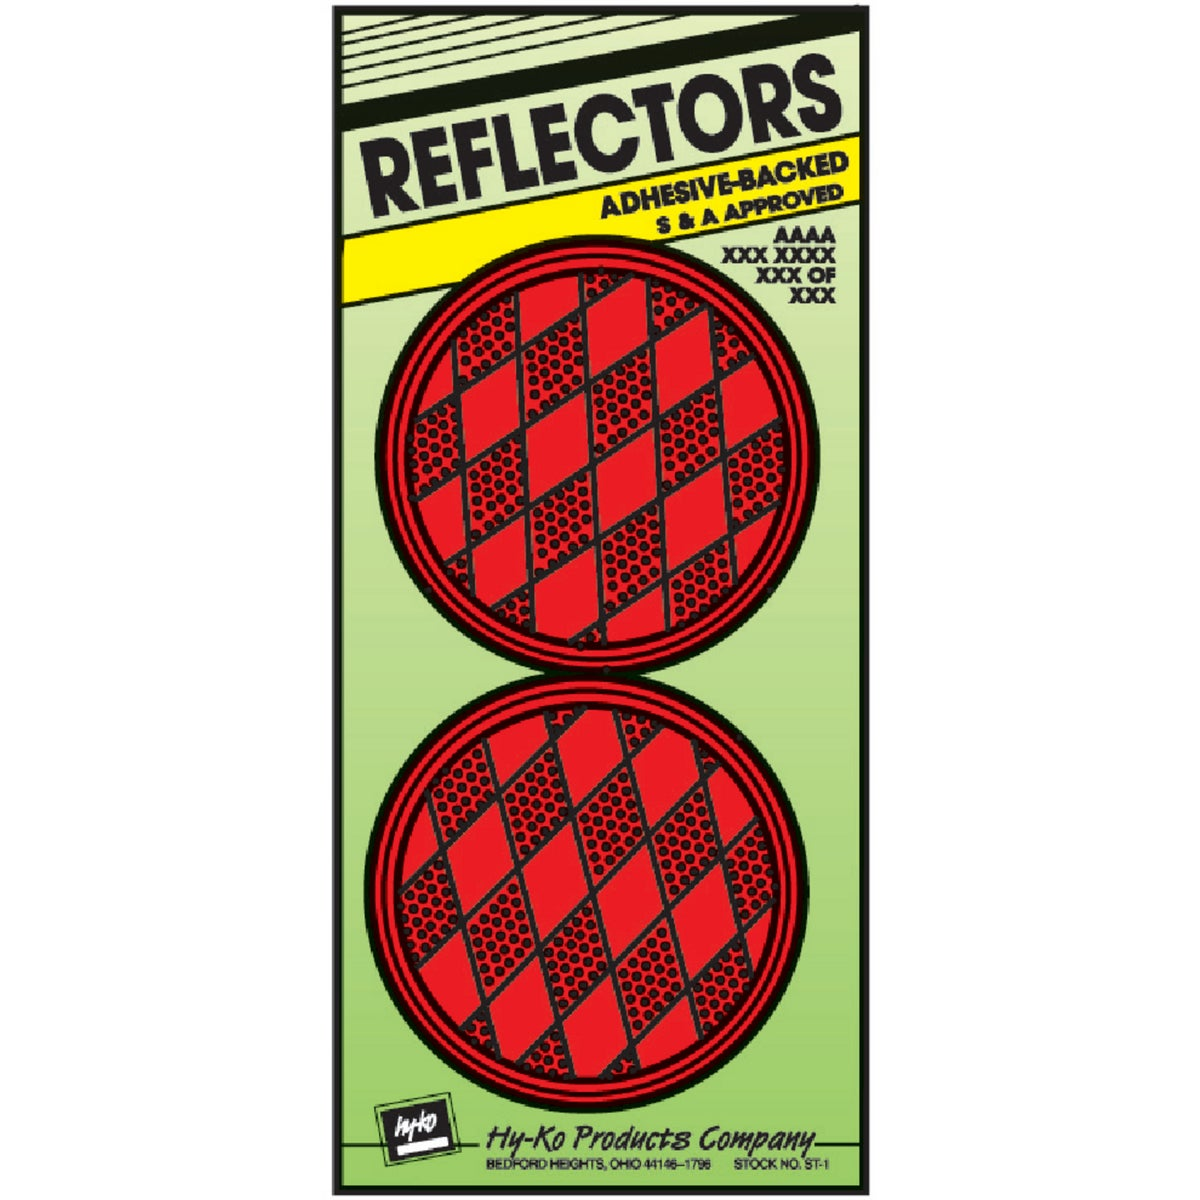 PRESS ON RED REFLECTORS